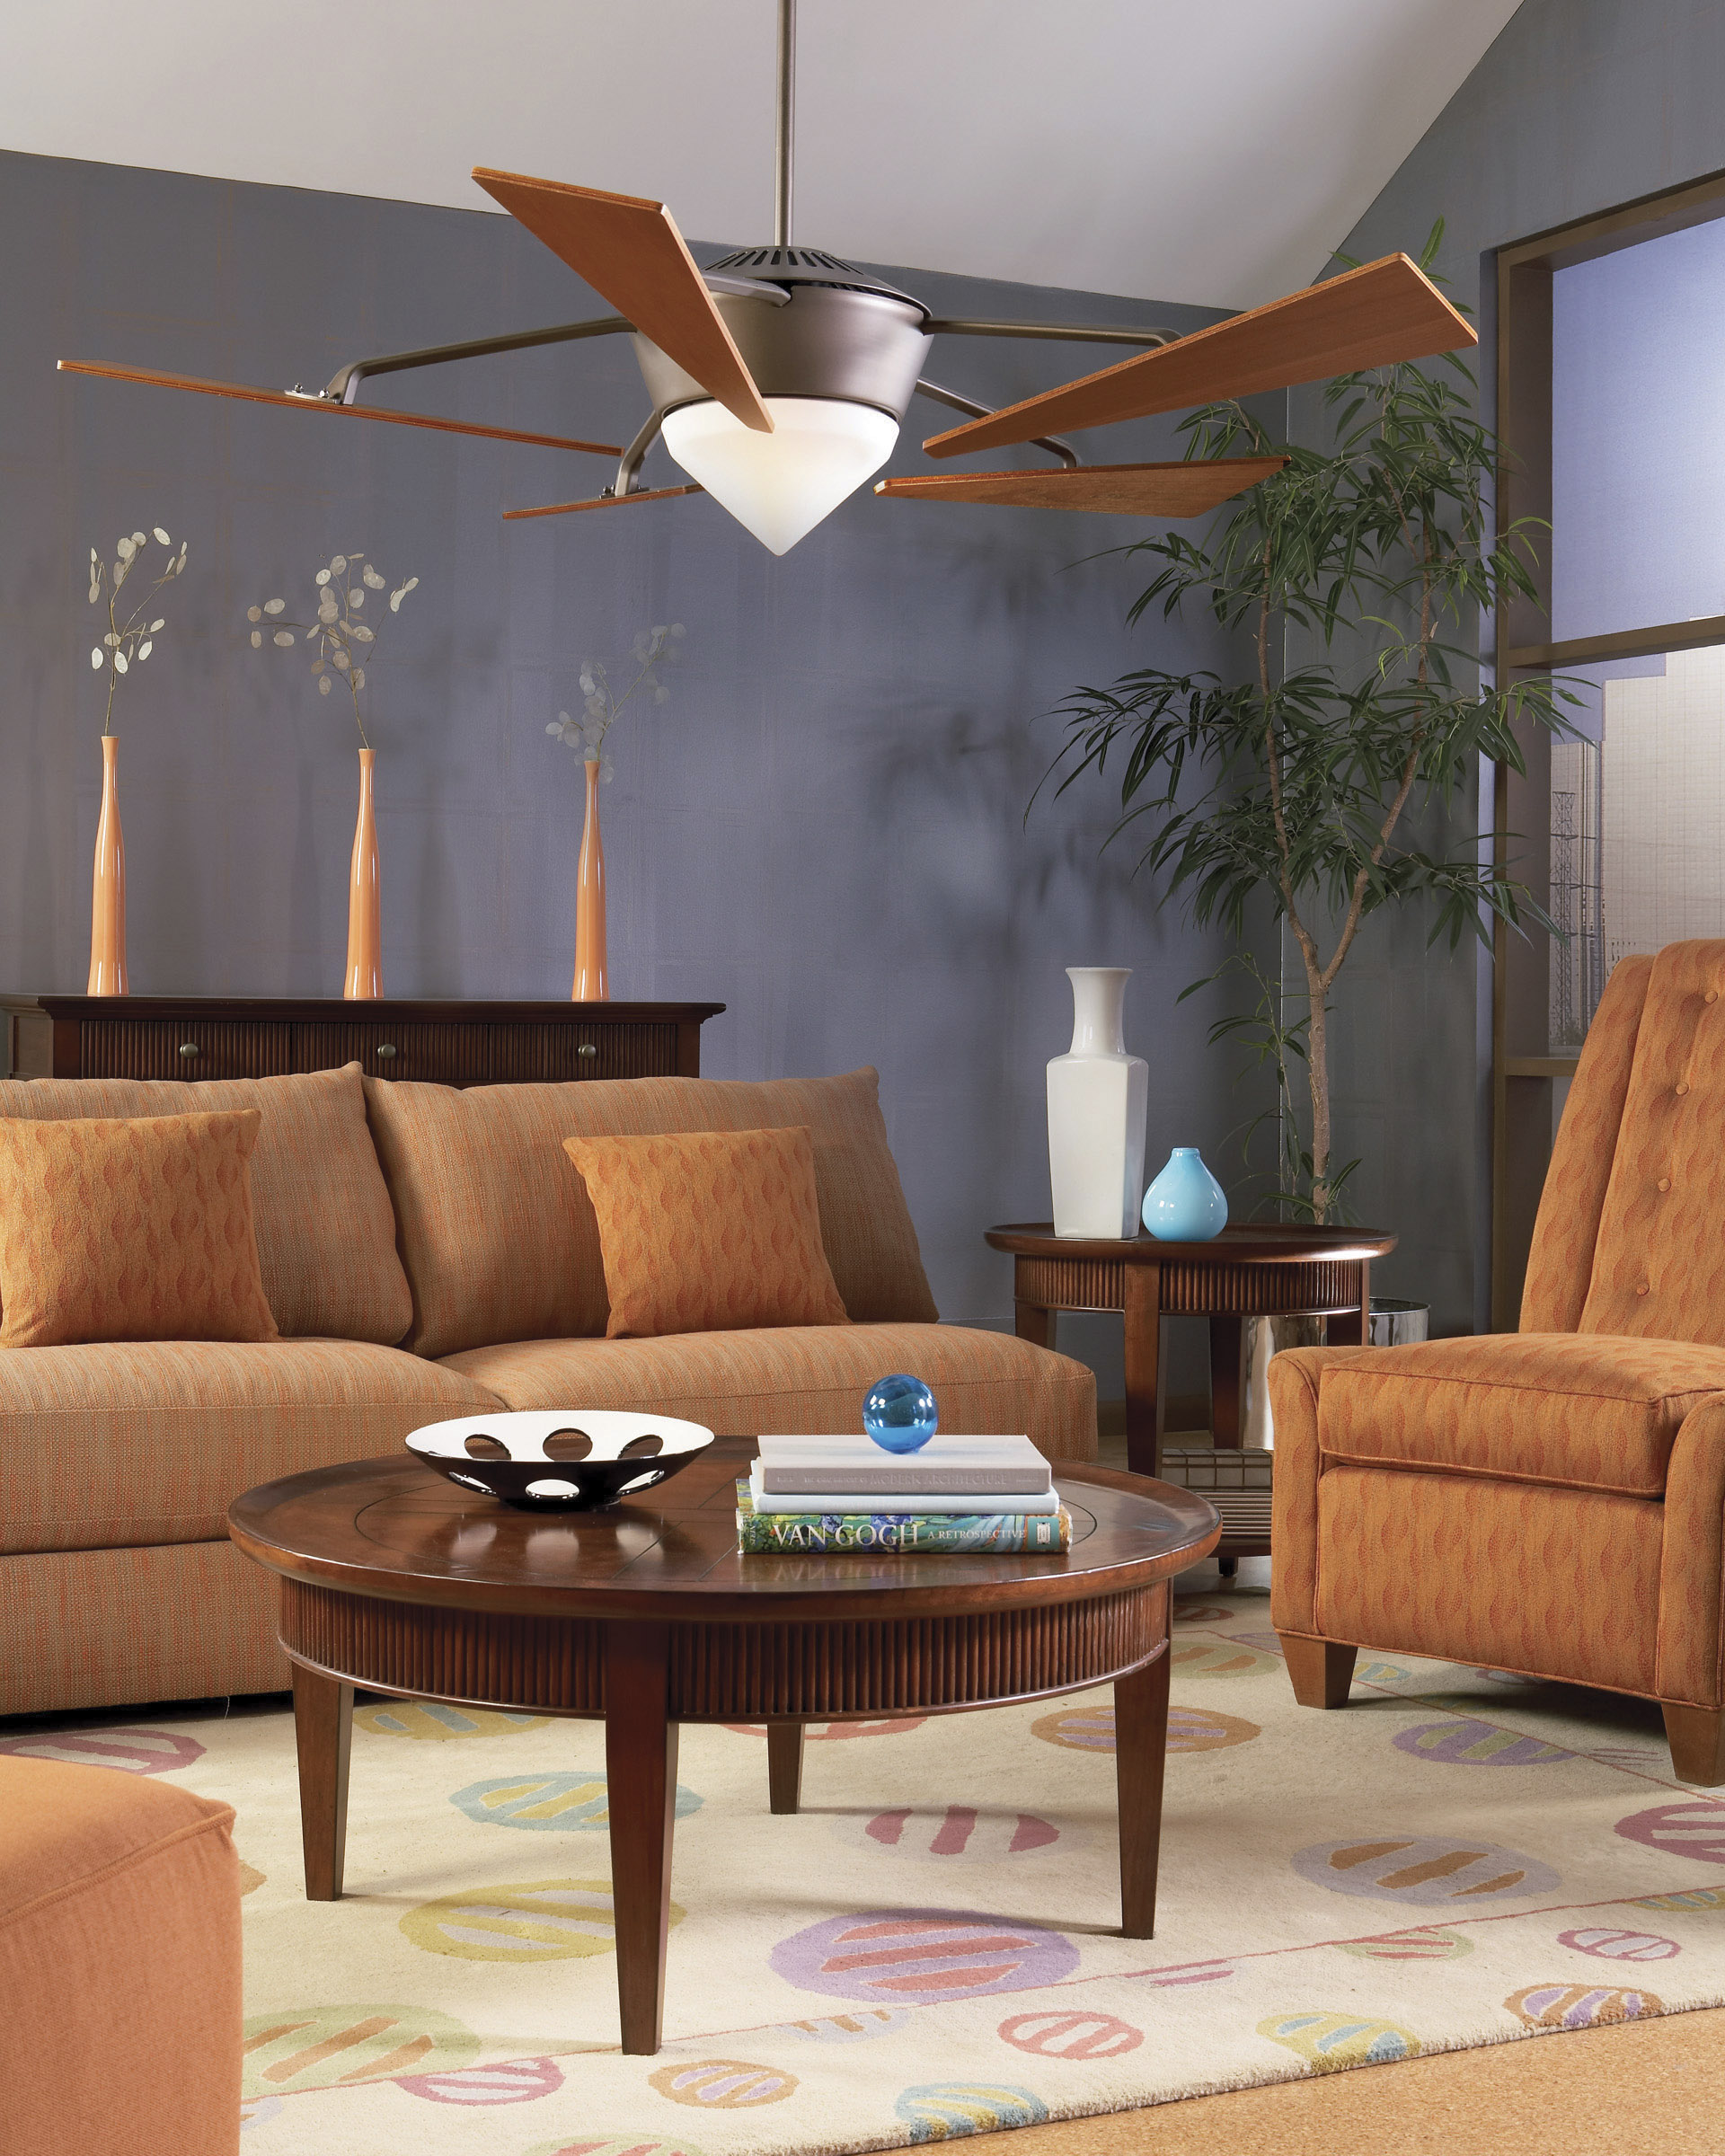 Lighting Ideas For Living Room With Ceiling Fan Wood A Whiff Of Good Taste And Modern Style Is What This Provides To Any